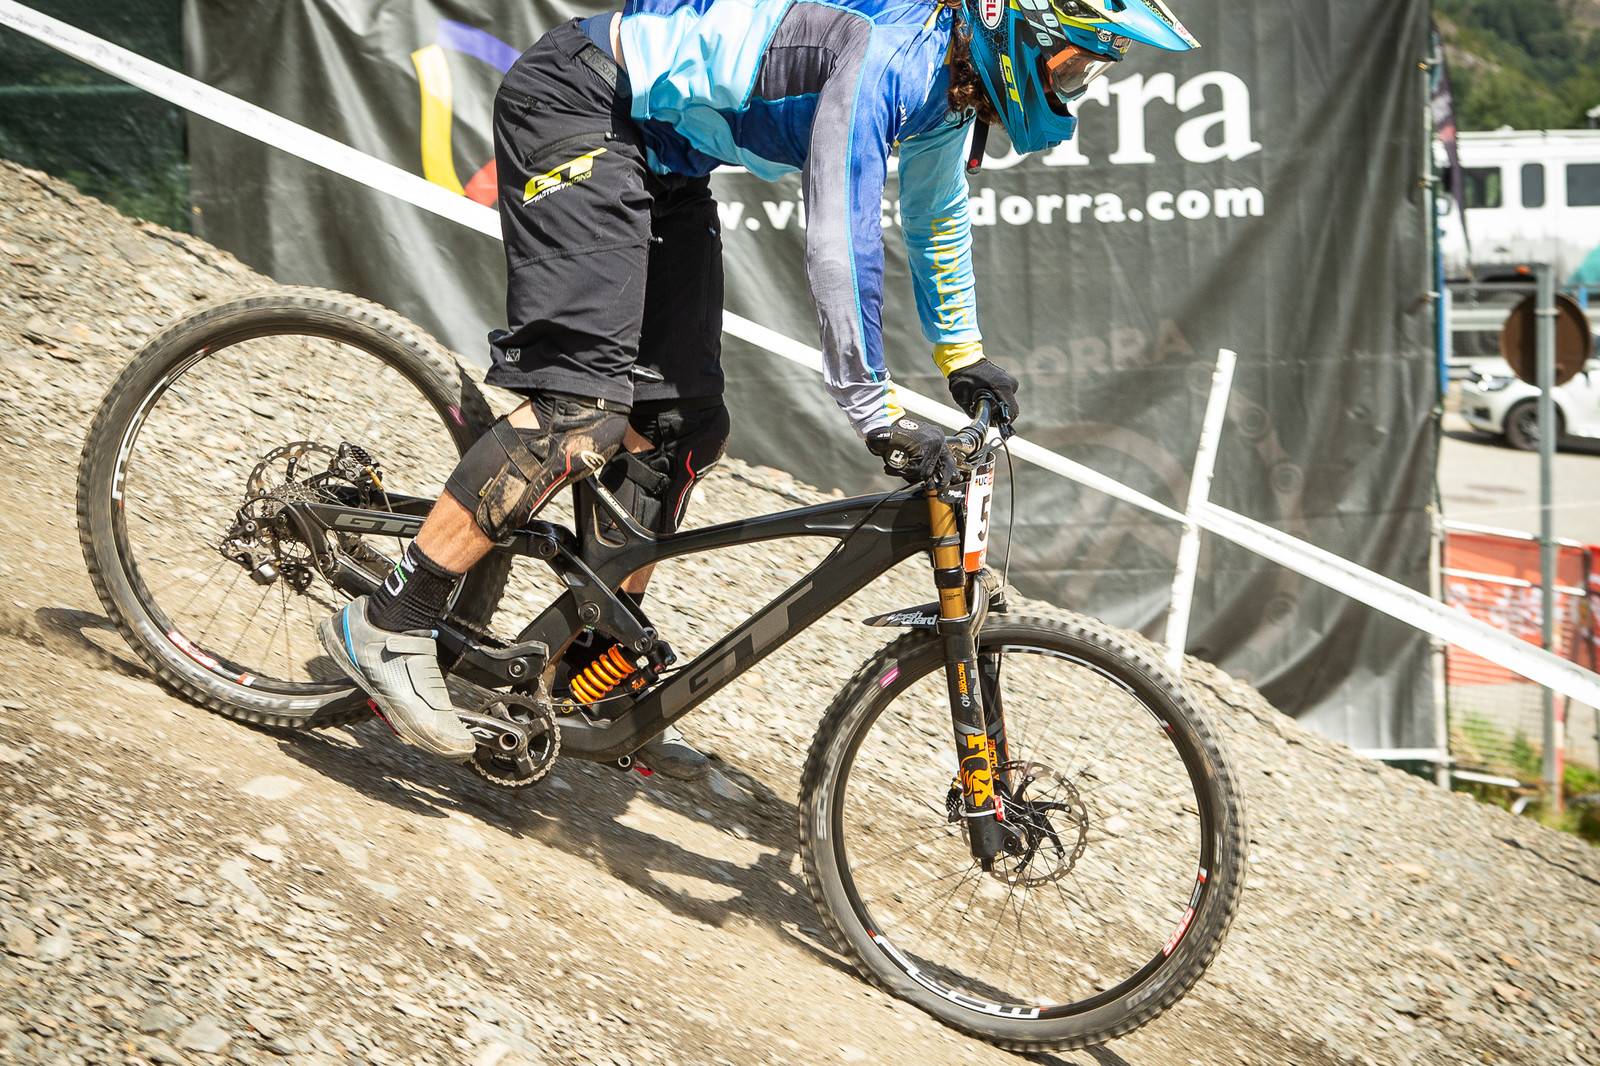 Wyn Masters Prototype GT - G-Out Project - Andorra World Cup DH - Mountain Biking Pictures - Vital MTB